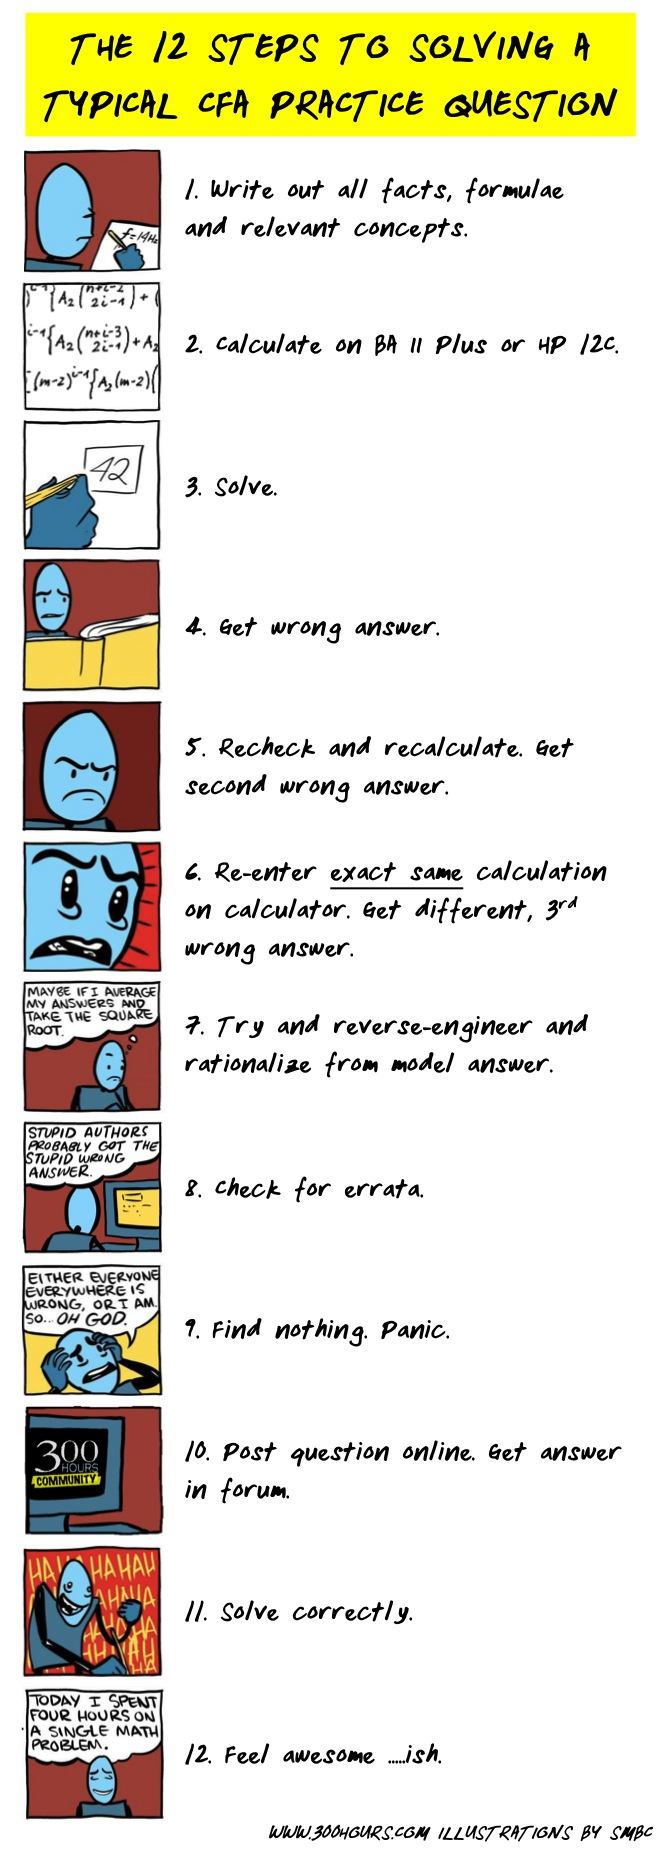 cfa funny comic 12 steps to solve cfa practice questions